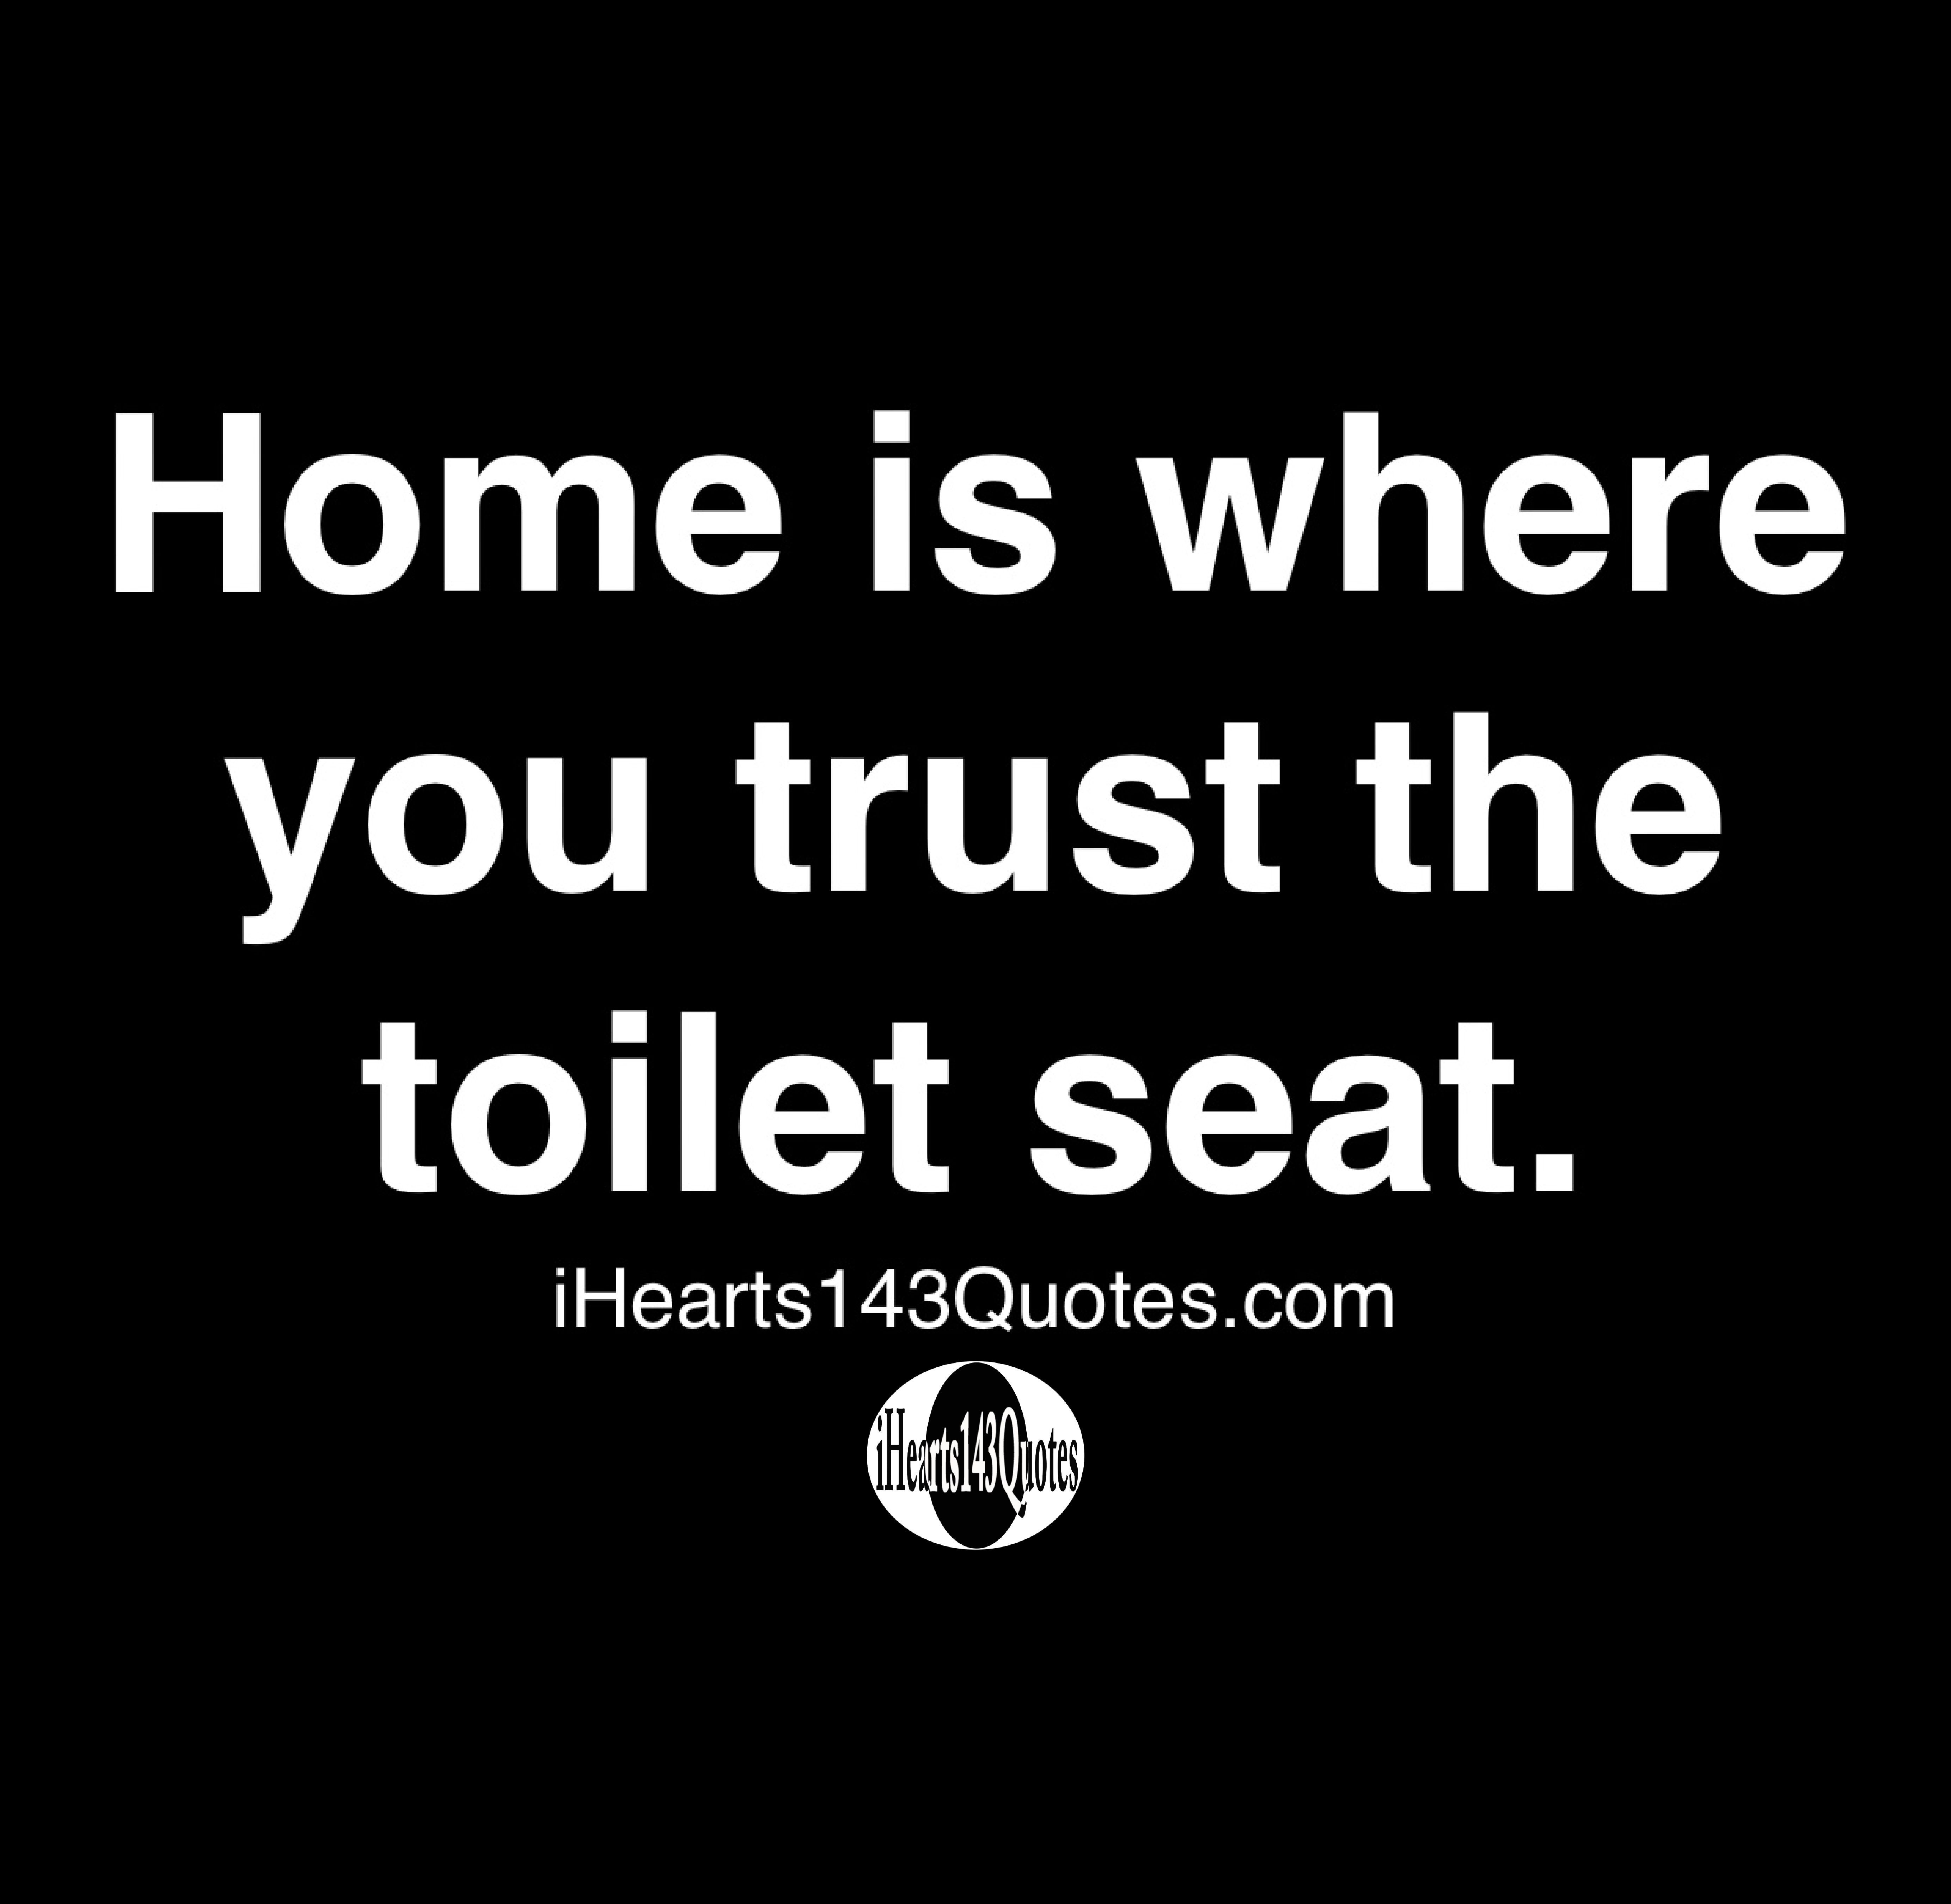 Home Is Where You Trust The Toilet Seat Quotes Ihearts143quotes Funny Quotes Daily Motivational Quotes Inspirational Quotes